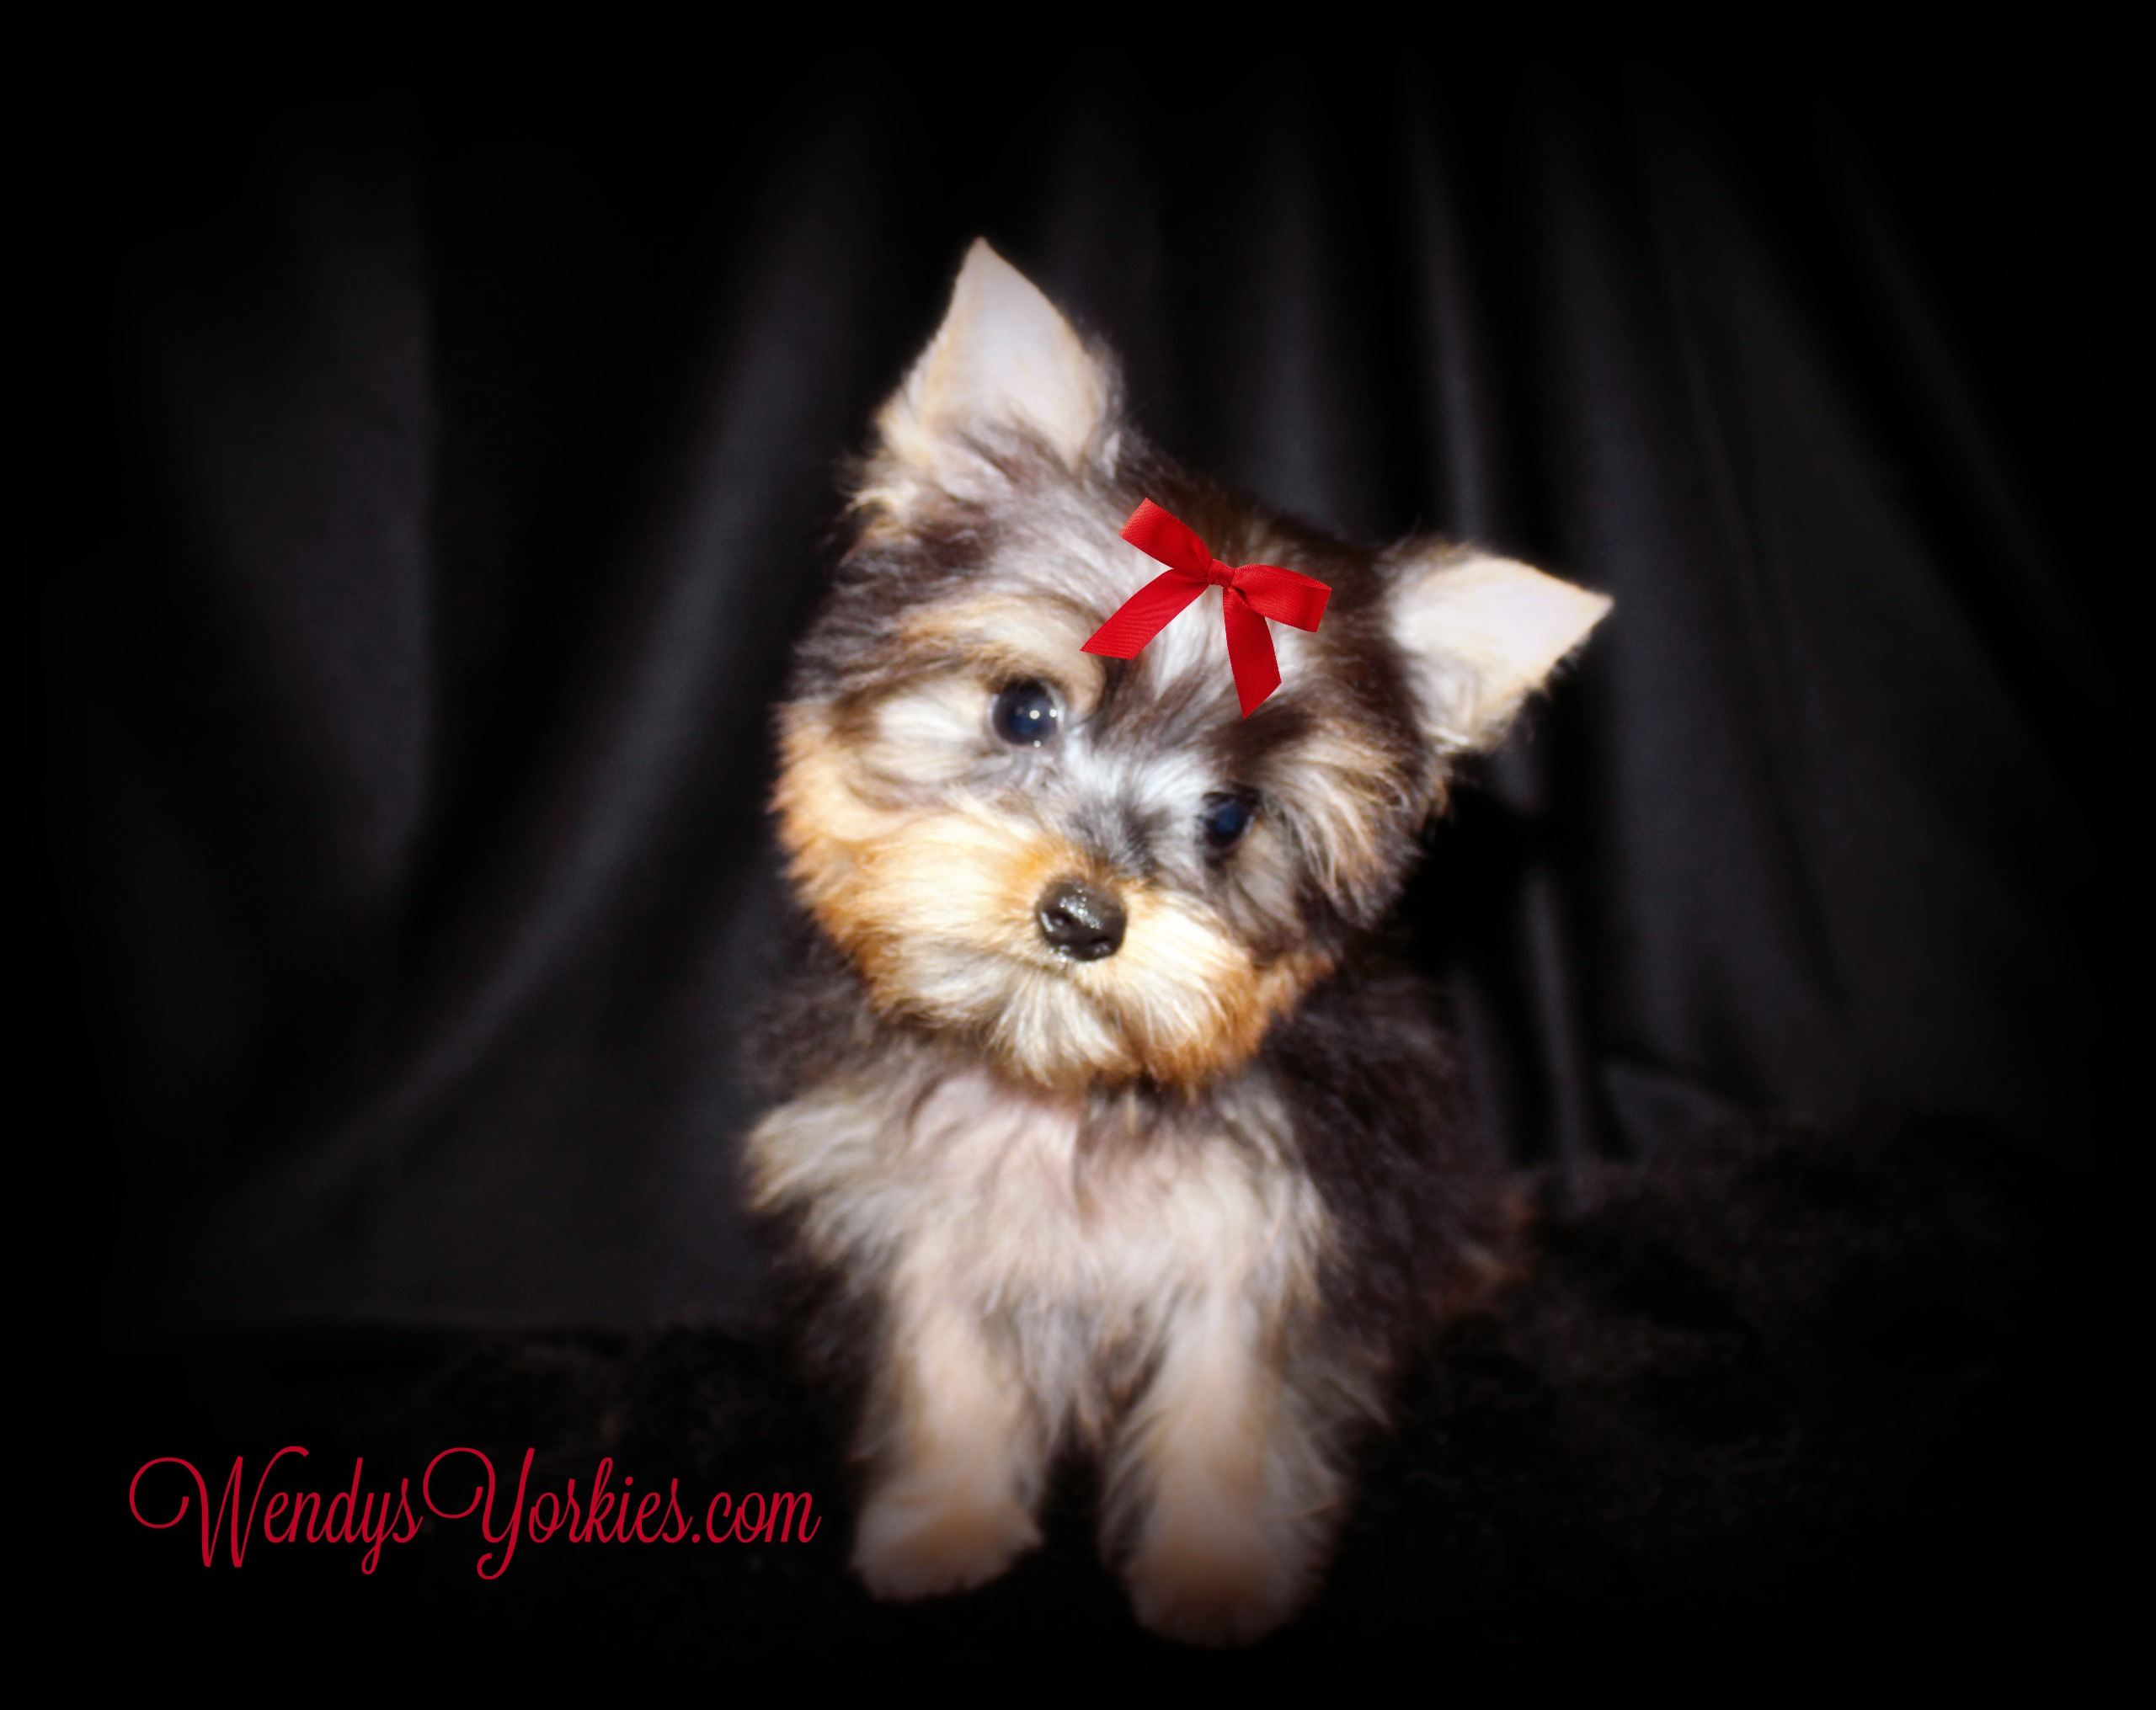 Tiny Yorkie puppy for sale, Brittney, Happy, WendysYorkies.com